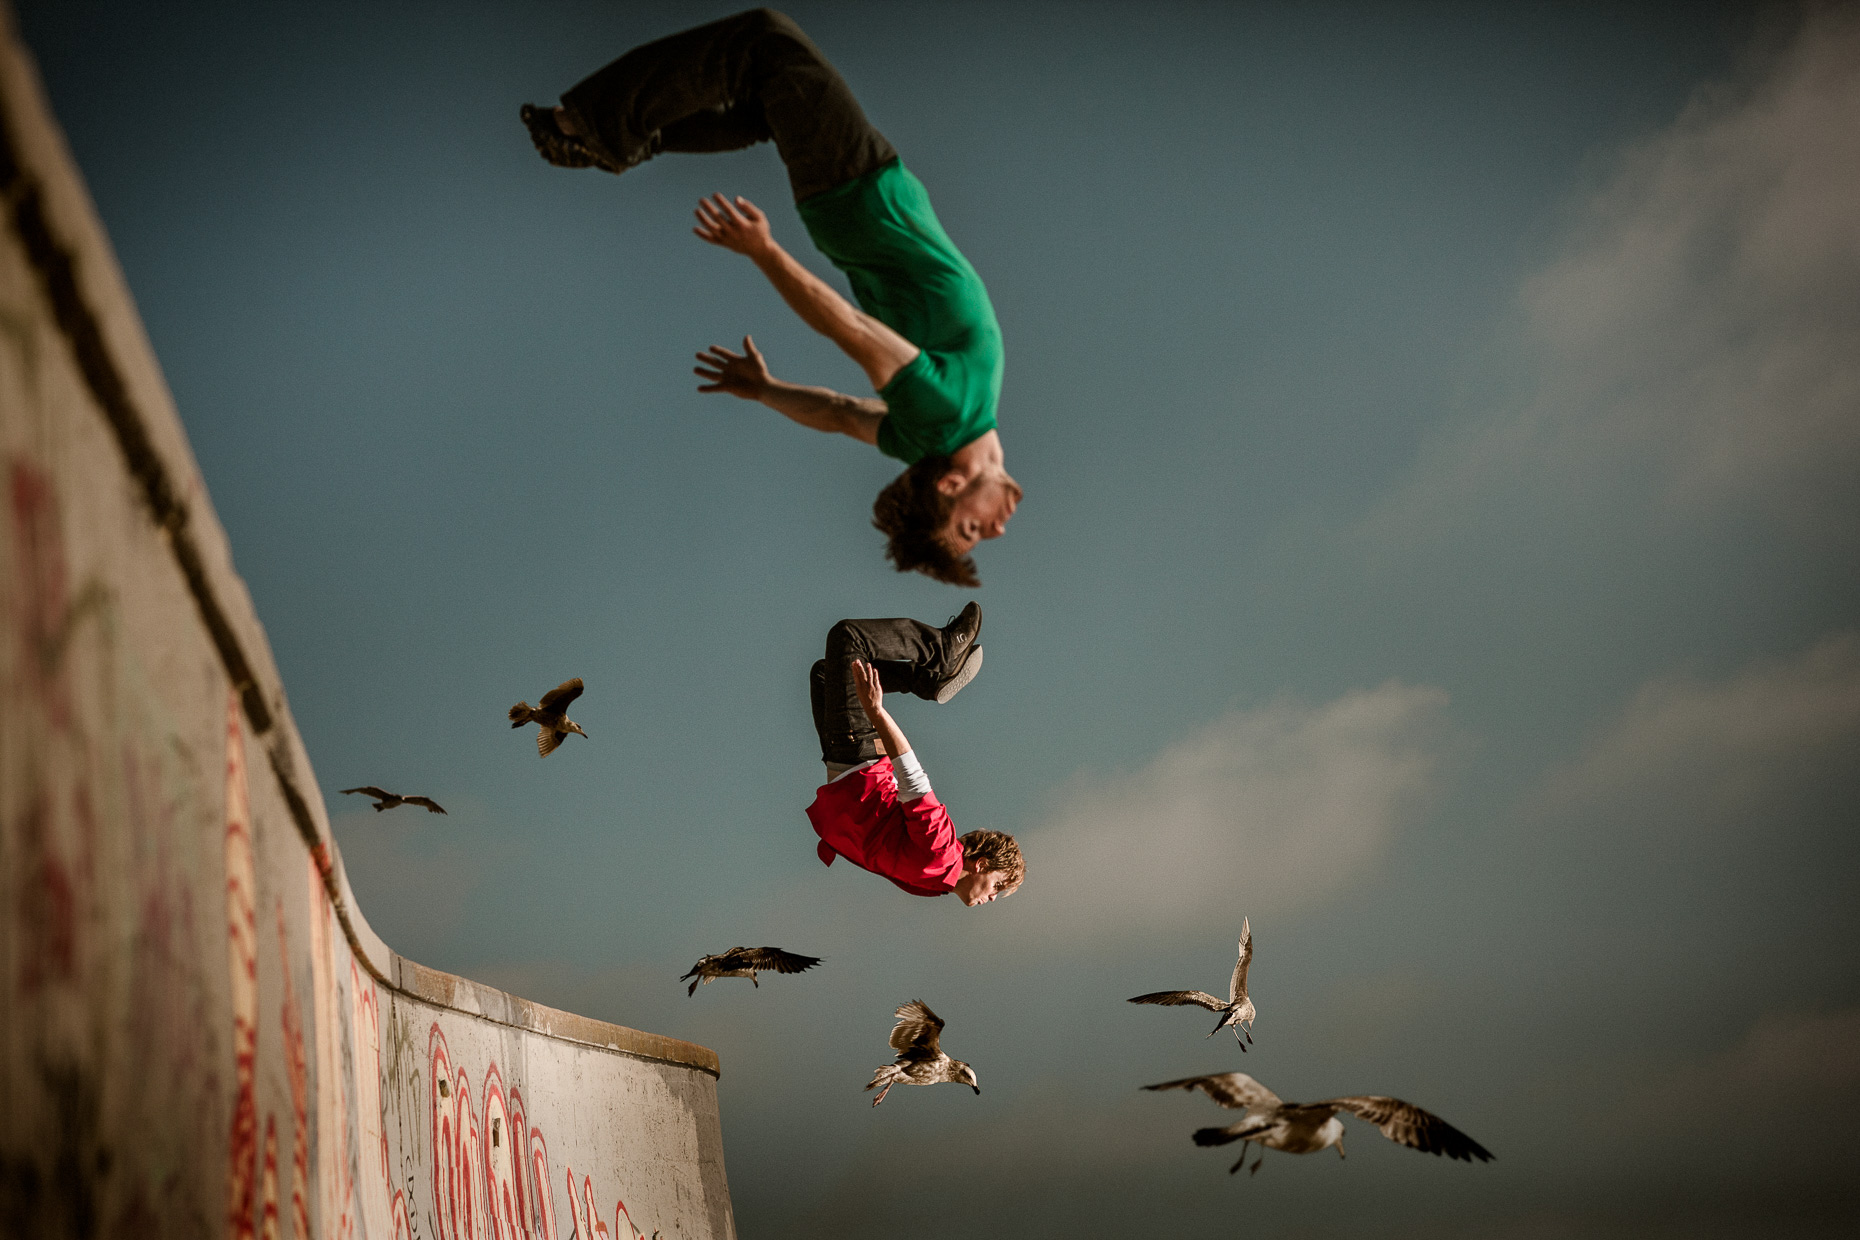 Parkour freerunner athletes Brian Orosco and Tyson Cecka flip over a concrete wall as seagulls fly by them